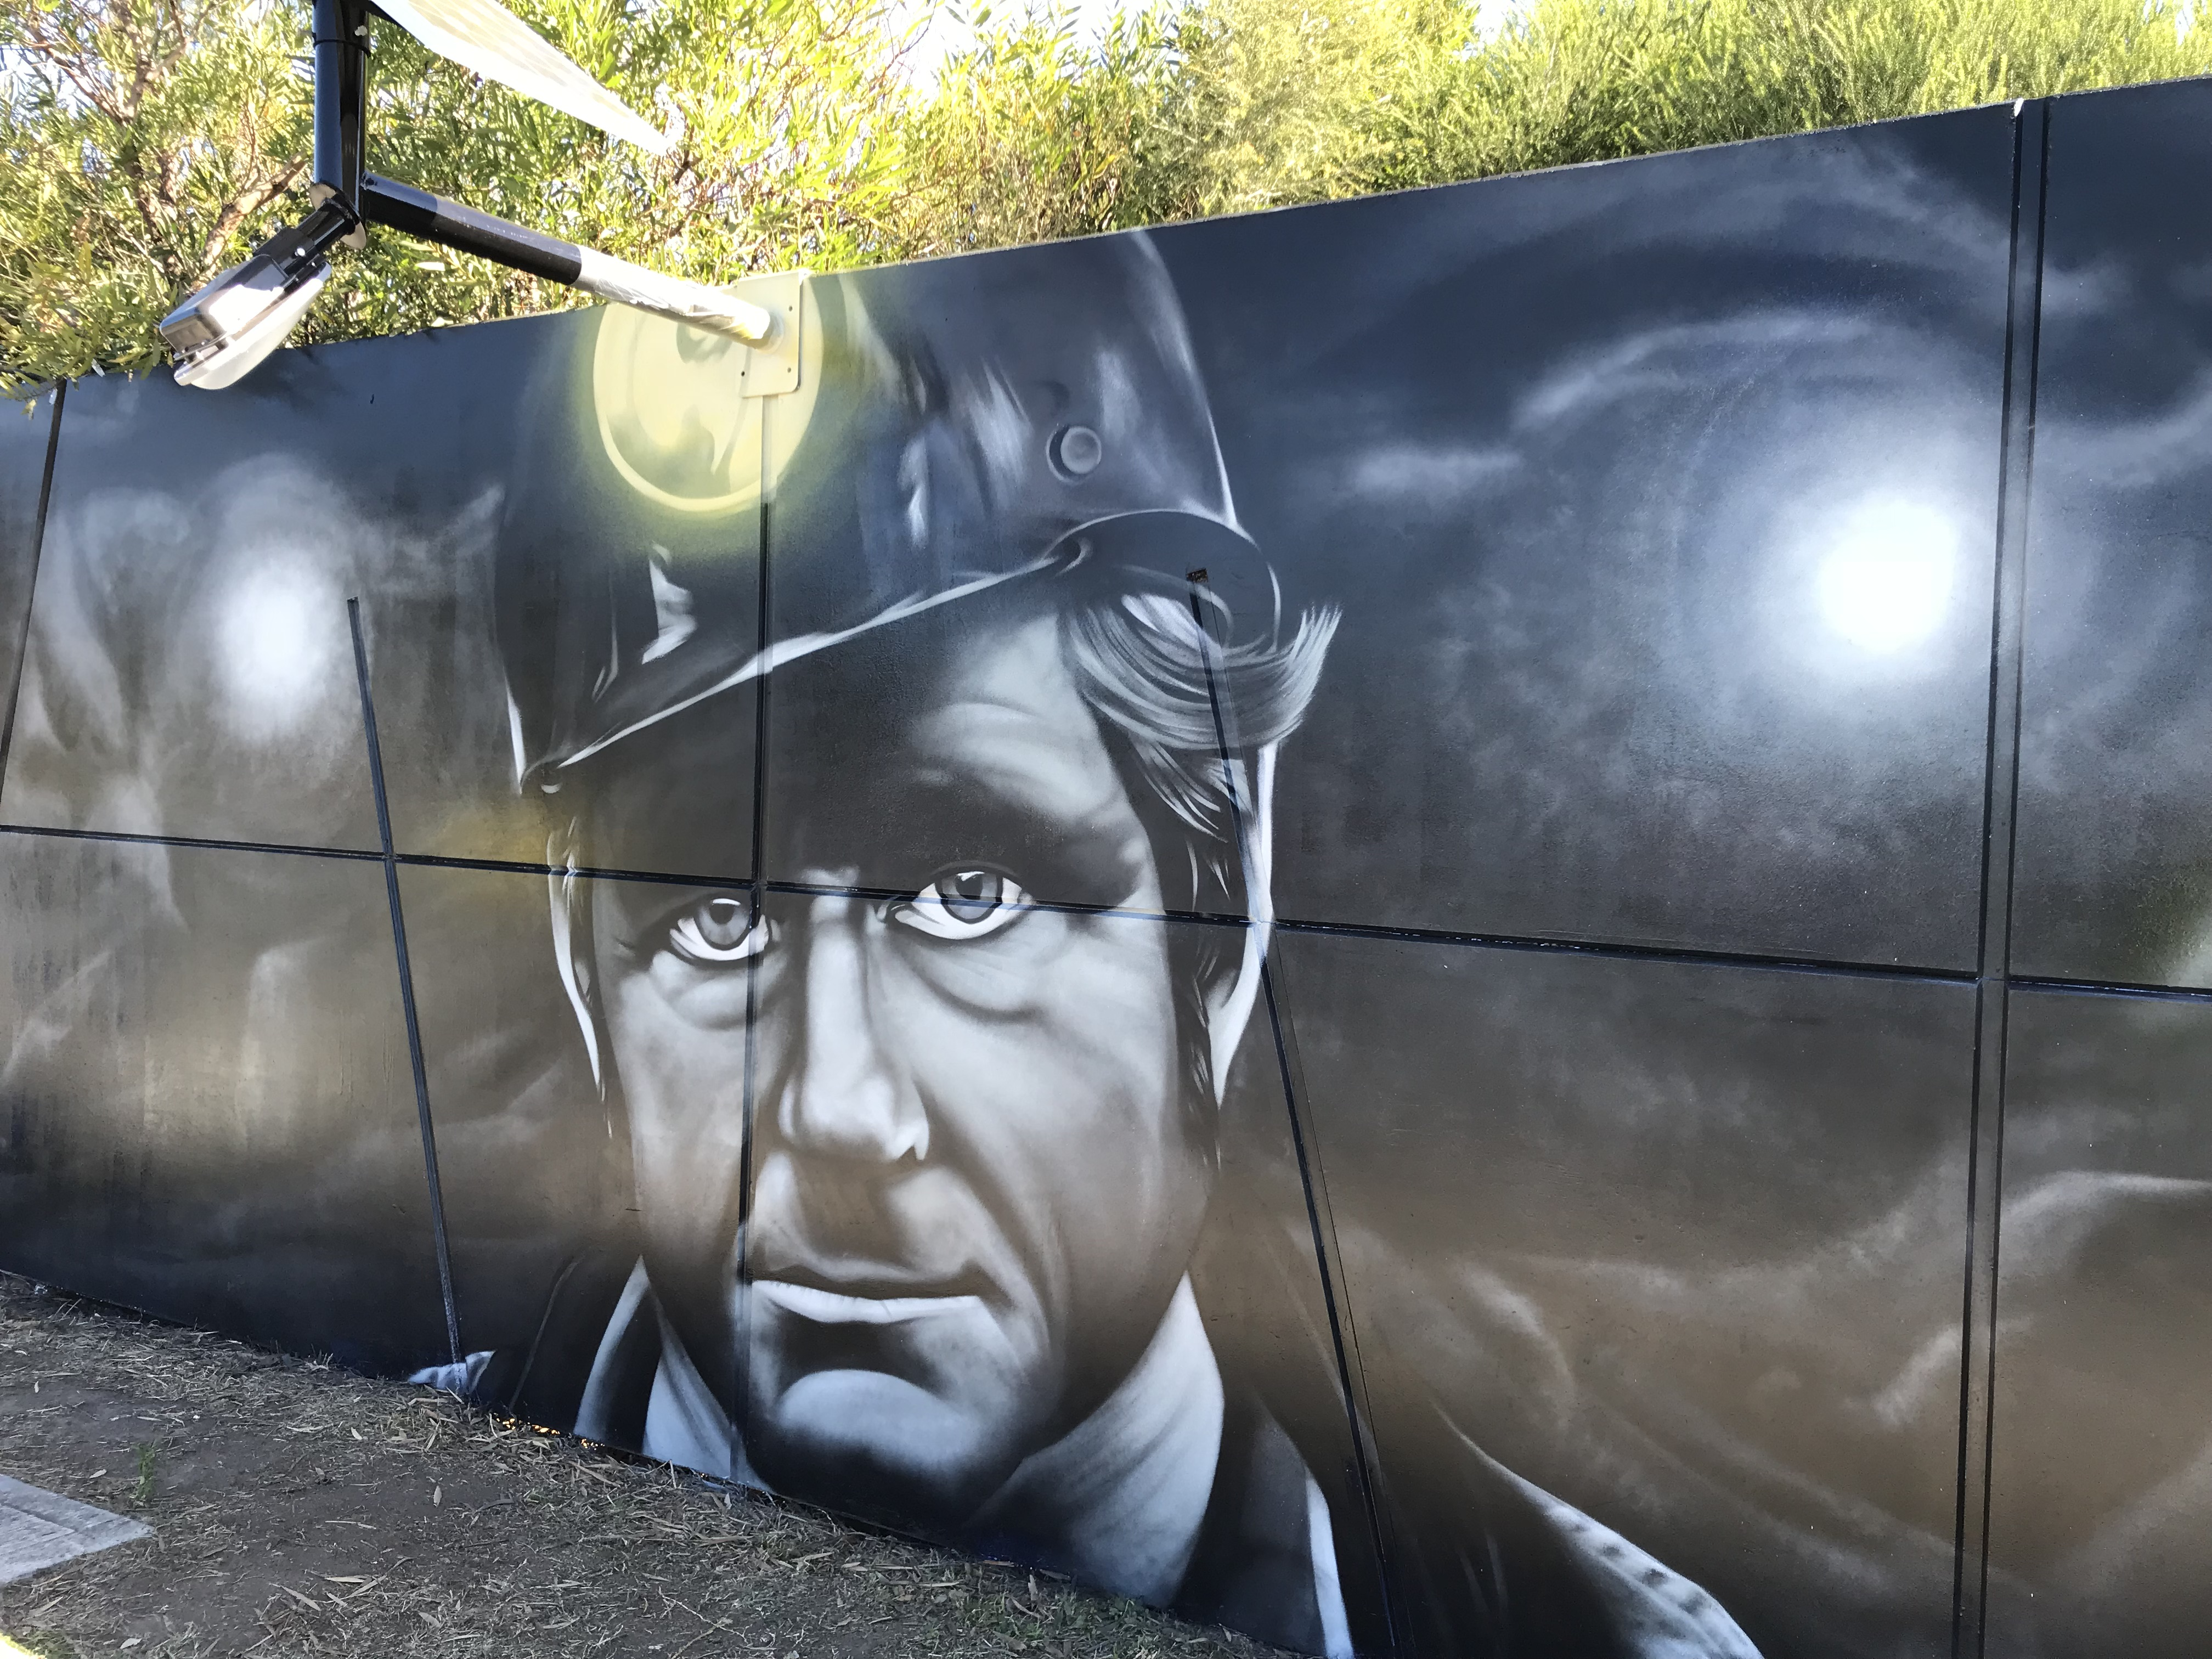 Street art mural portrait of miner